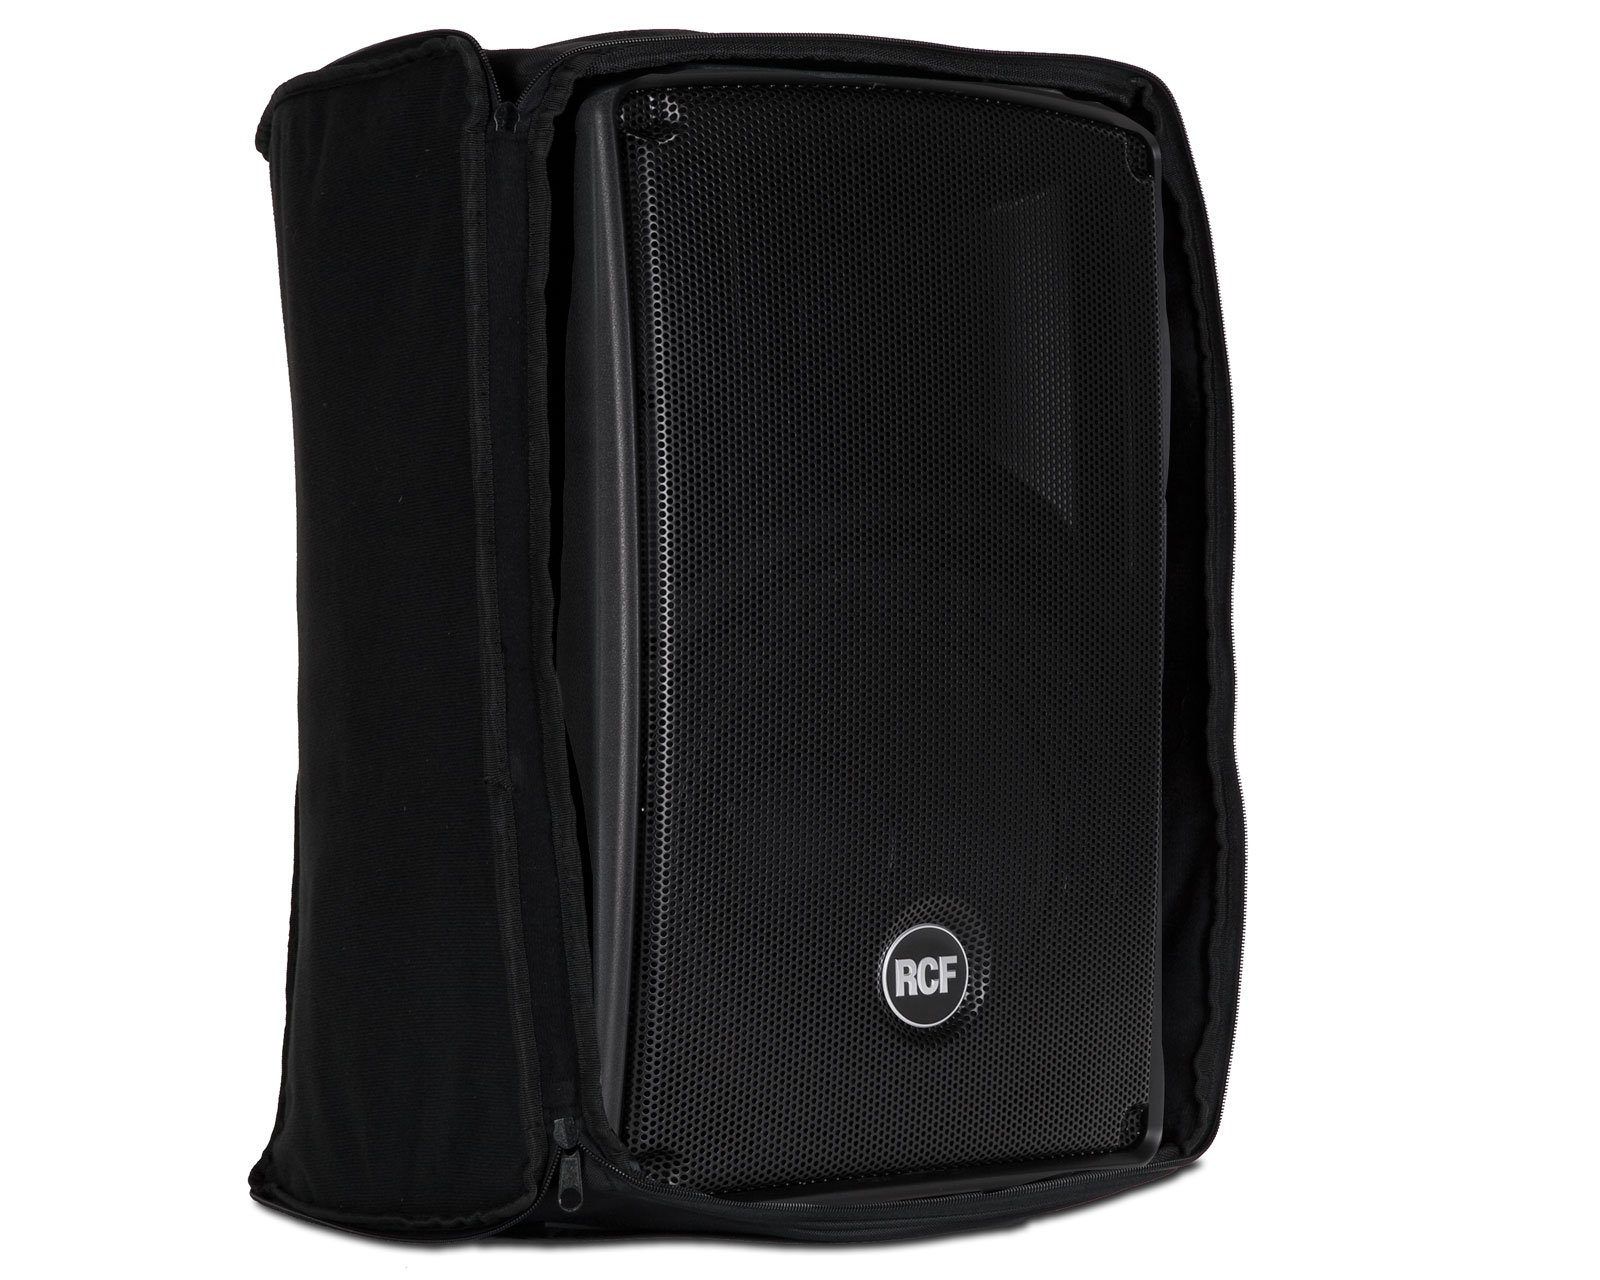 rcf-cover-hd10-hd-10-bag.jpg